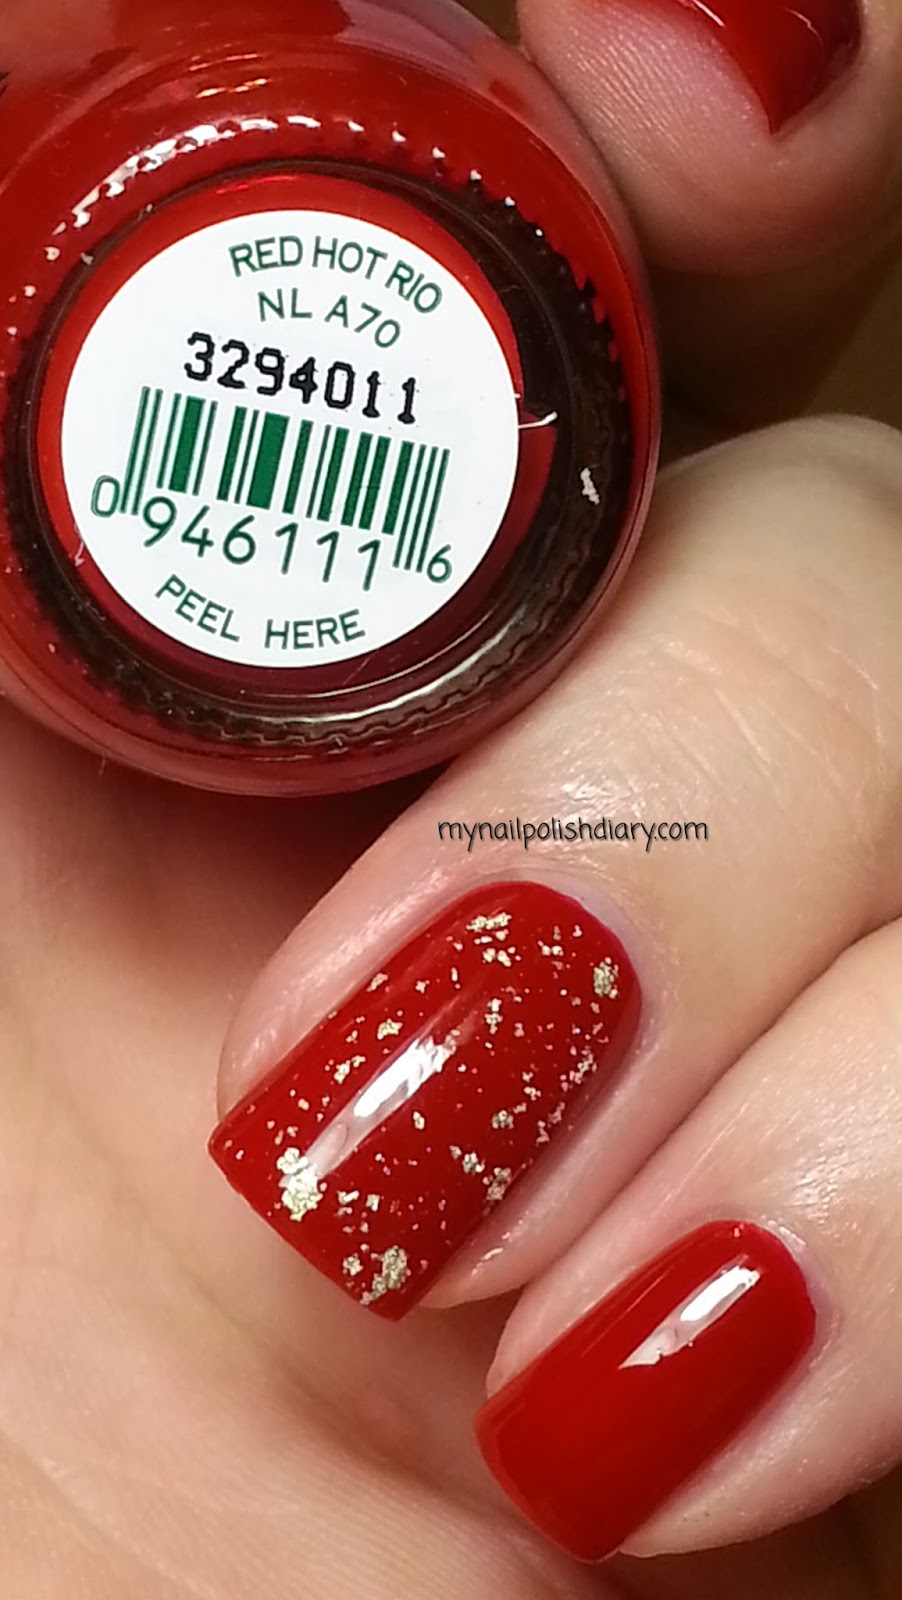 My Nail Polish Diary: OPI Red Hot Rio with OPI The Man With The ...